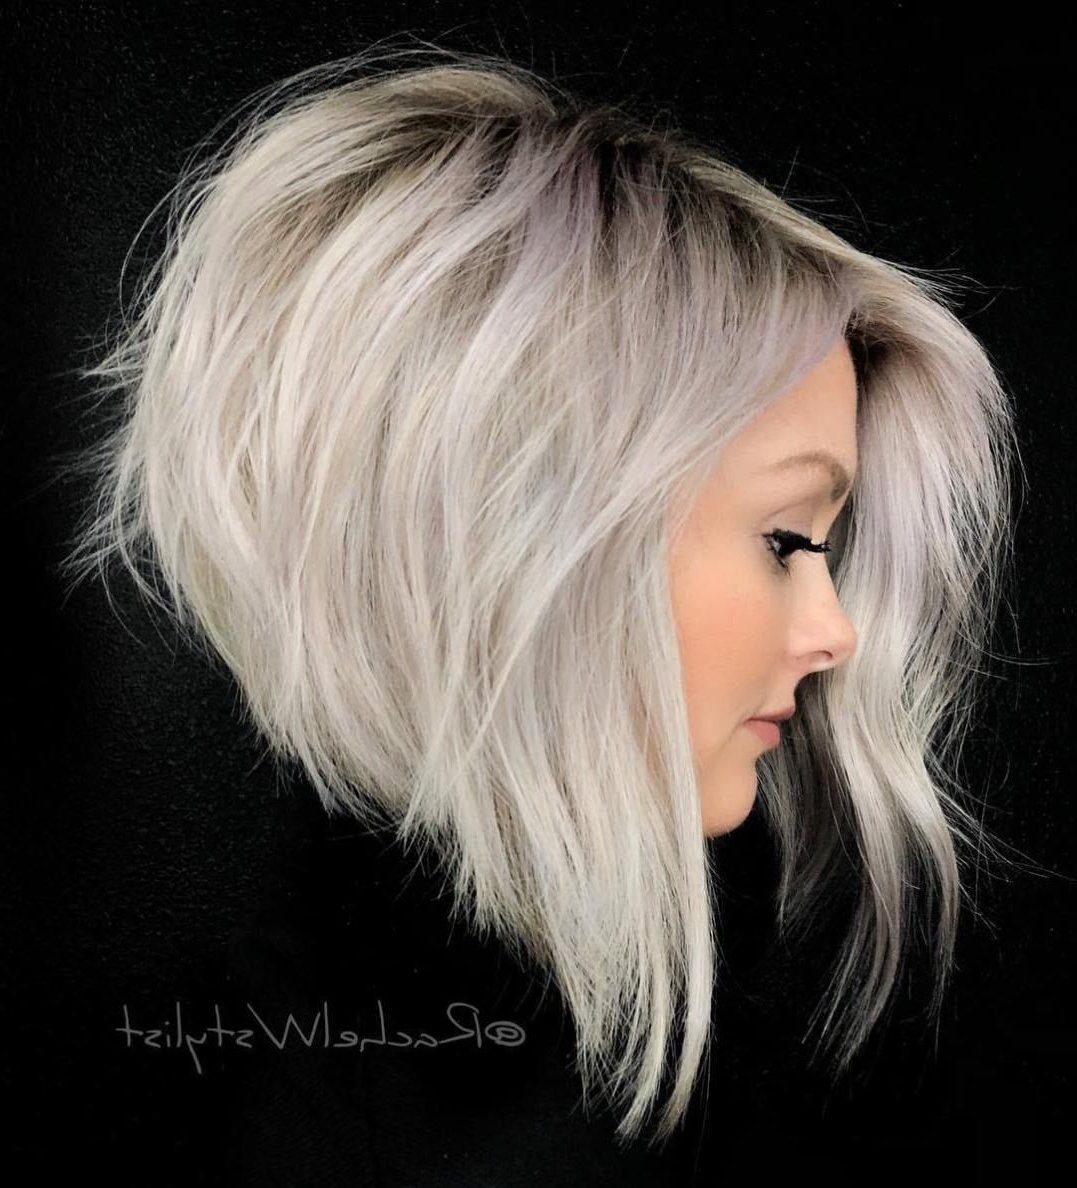 70 Overwhelming Ideas For Short Choppy Haircuts | Diy Inside Steeply Angled Razored Asymmetrical Bob Hairstyles (Gallery 7 of 20)